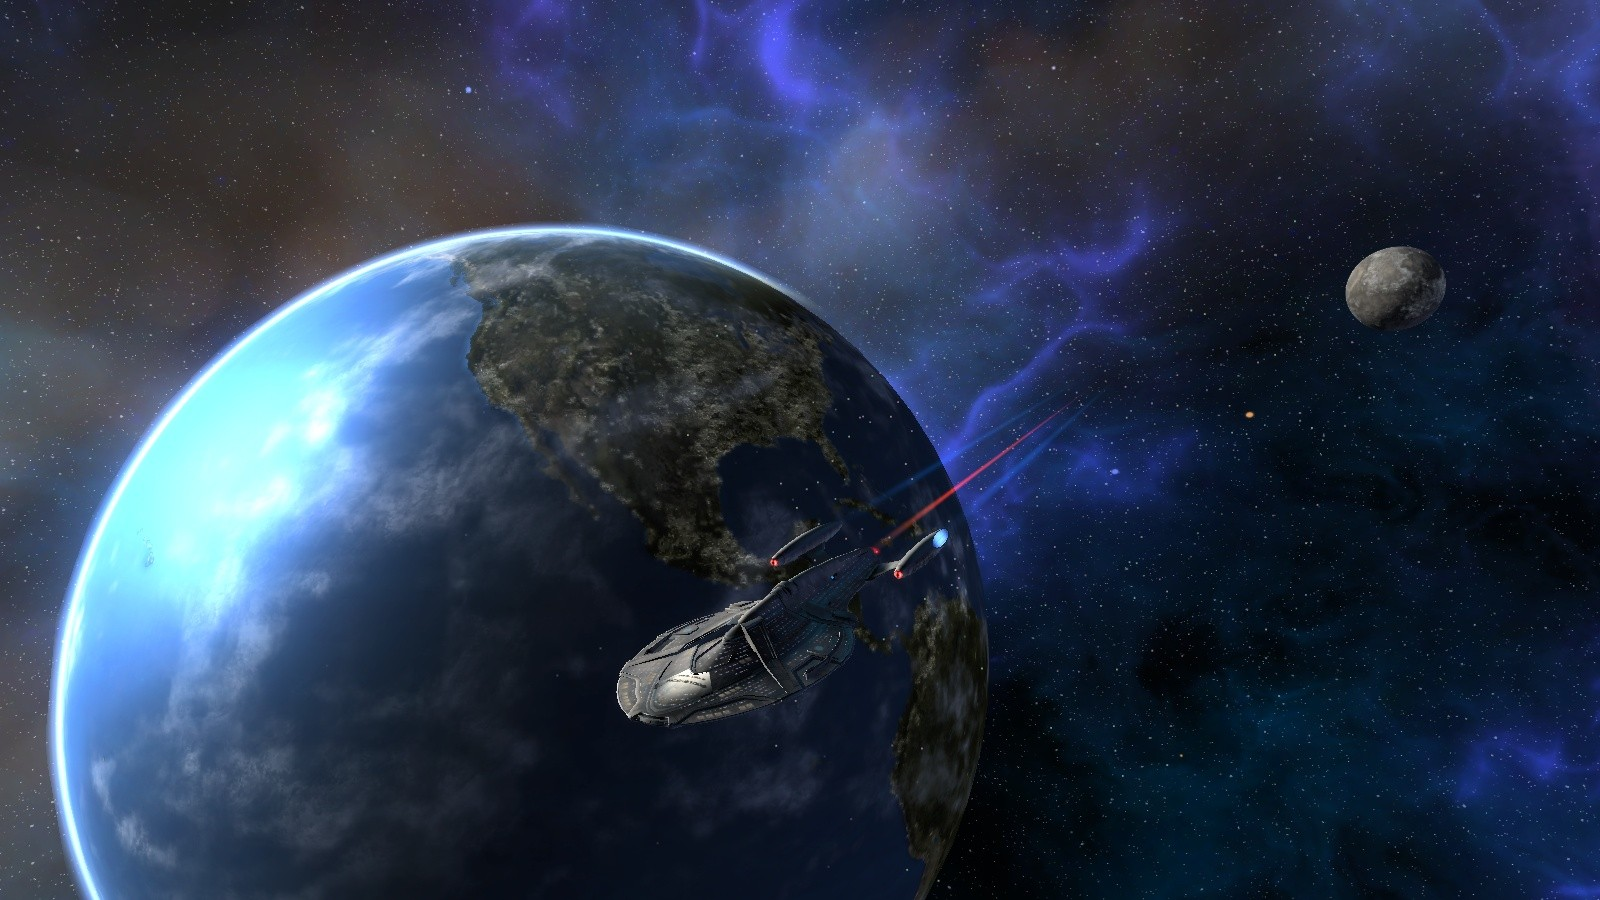 Star Trek Online - My ship. Another great view.